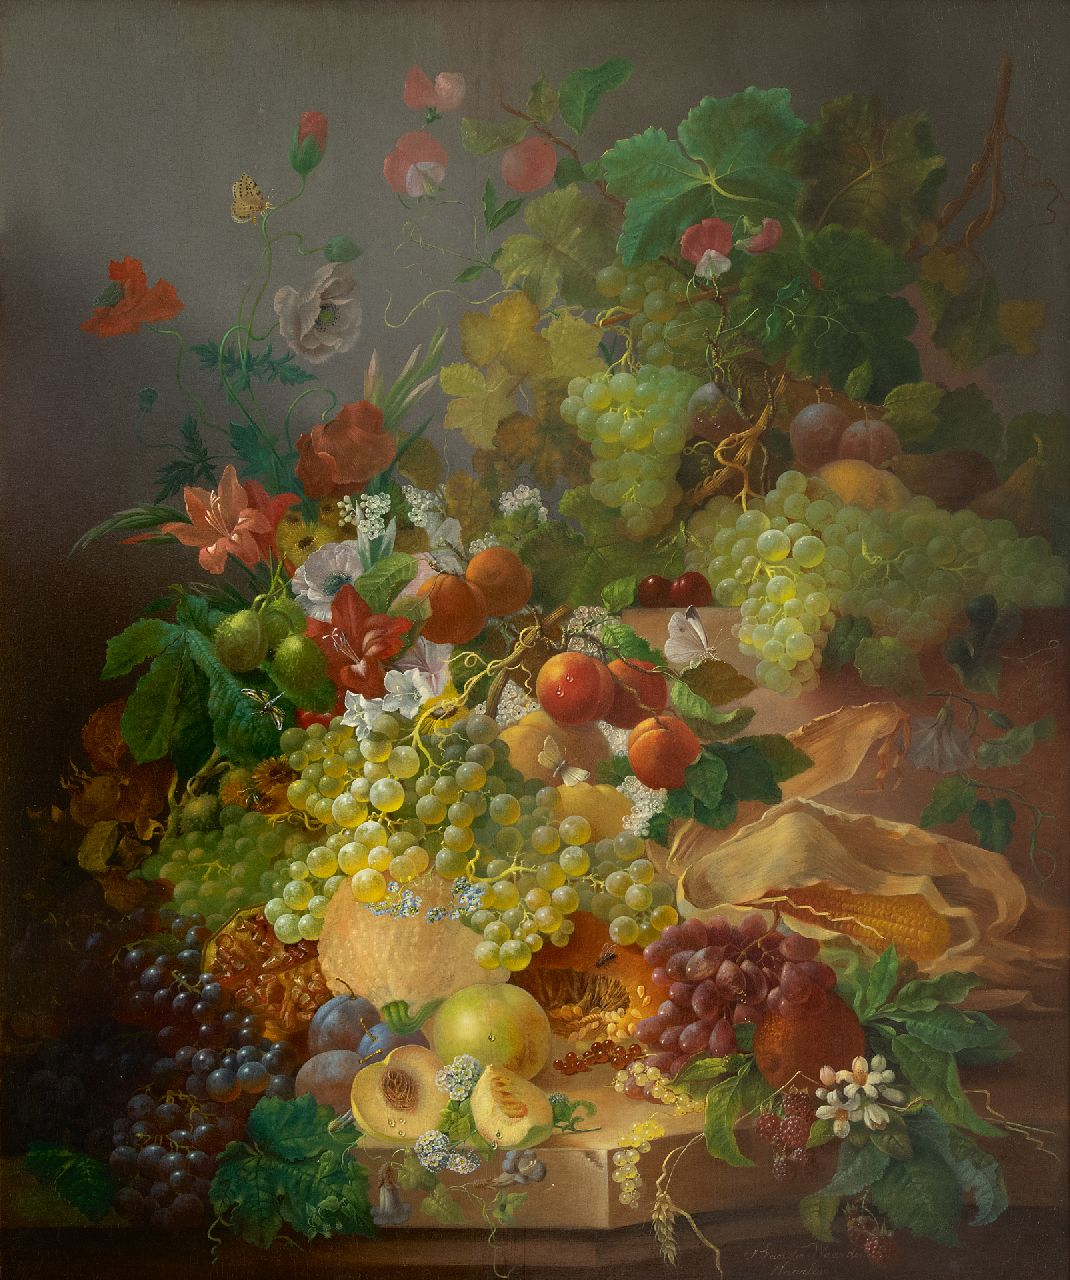 Jan van der Waarden | A still life with fruit and flowers, oil on panel, 91.8 x 76.7 cm, signed l.r. and painted after 1850